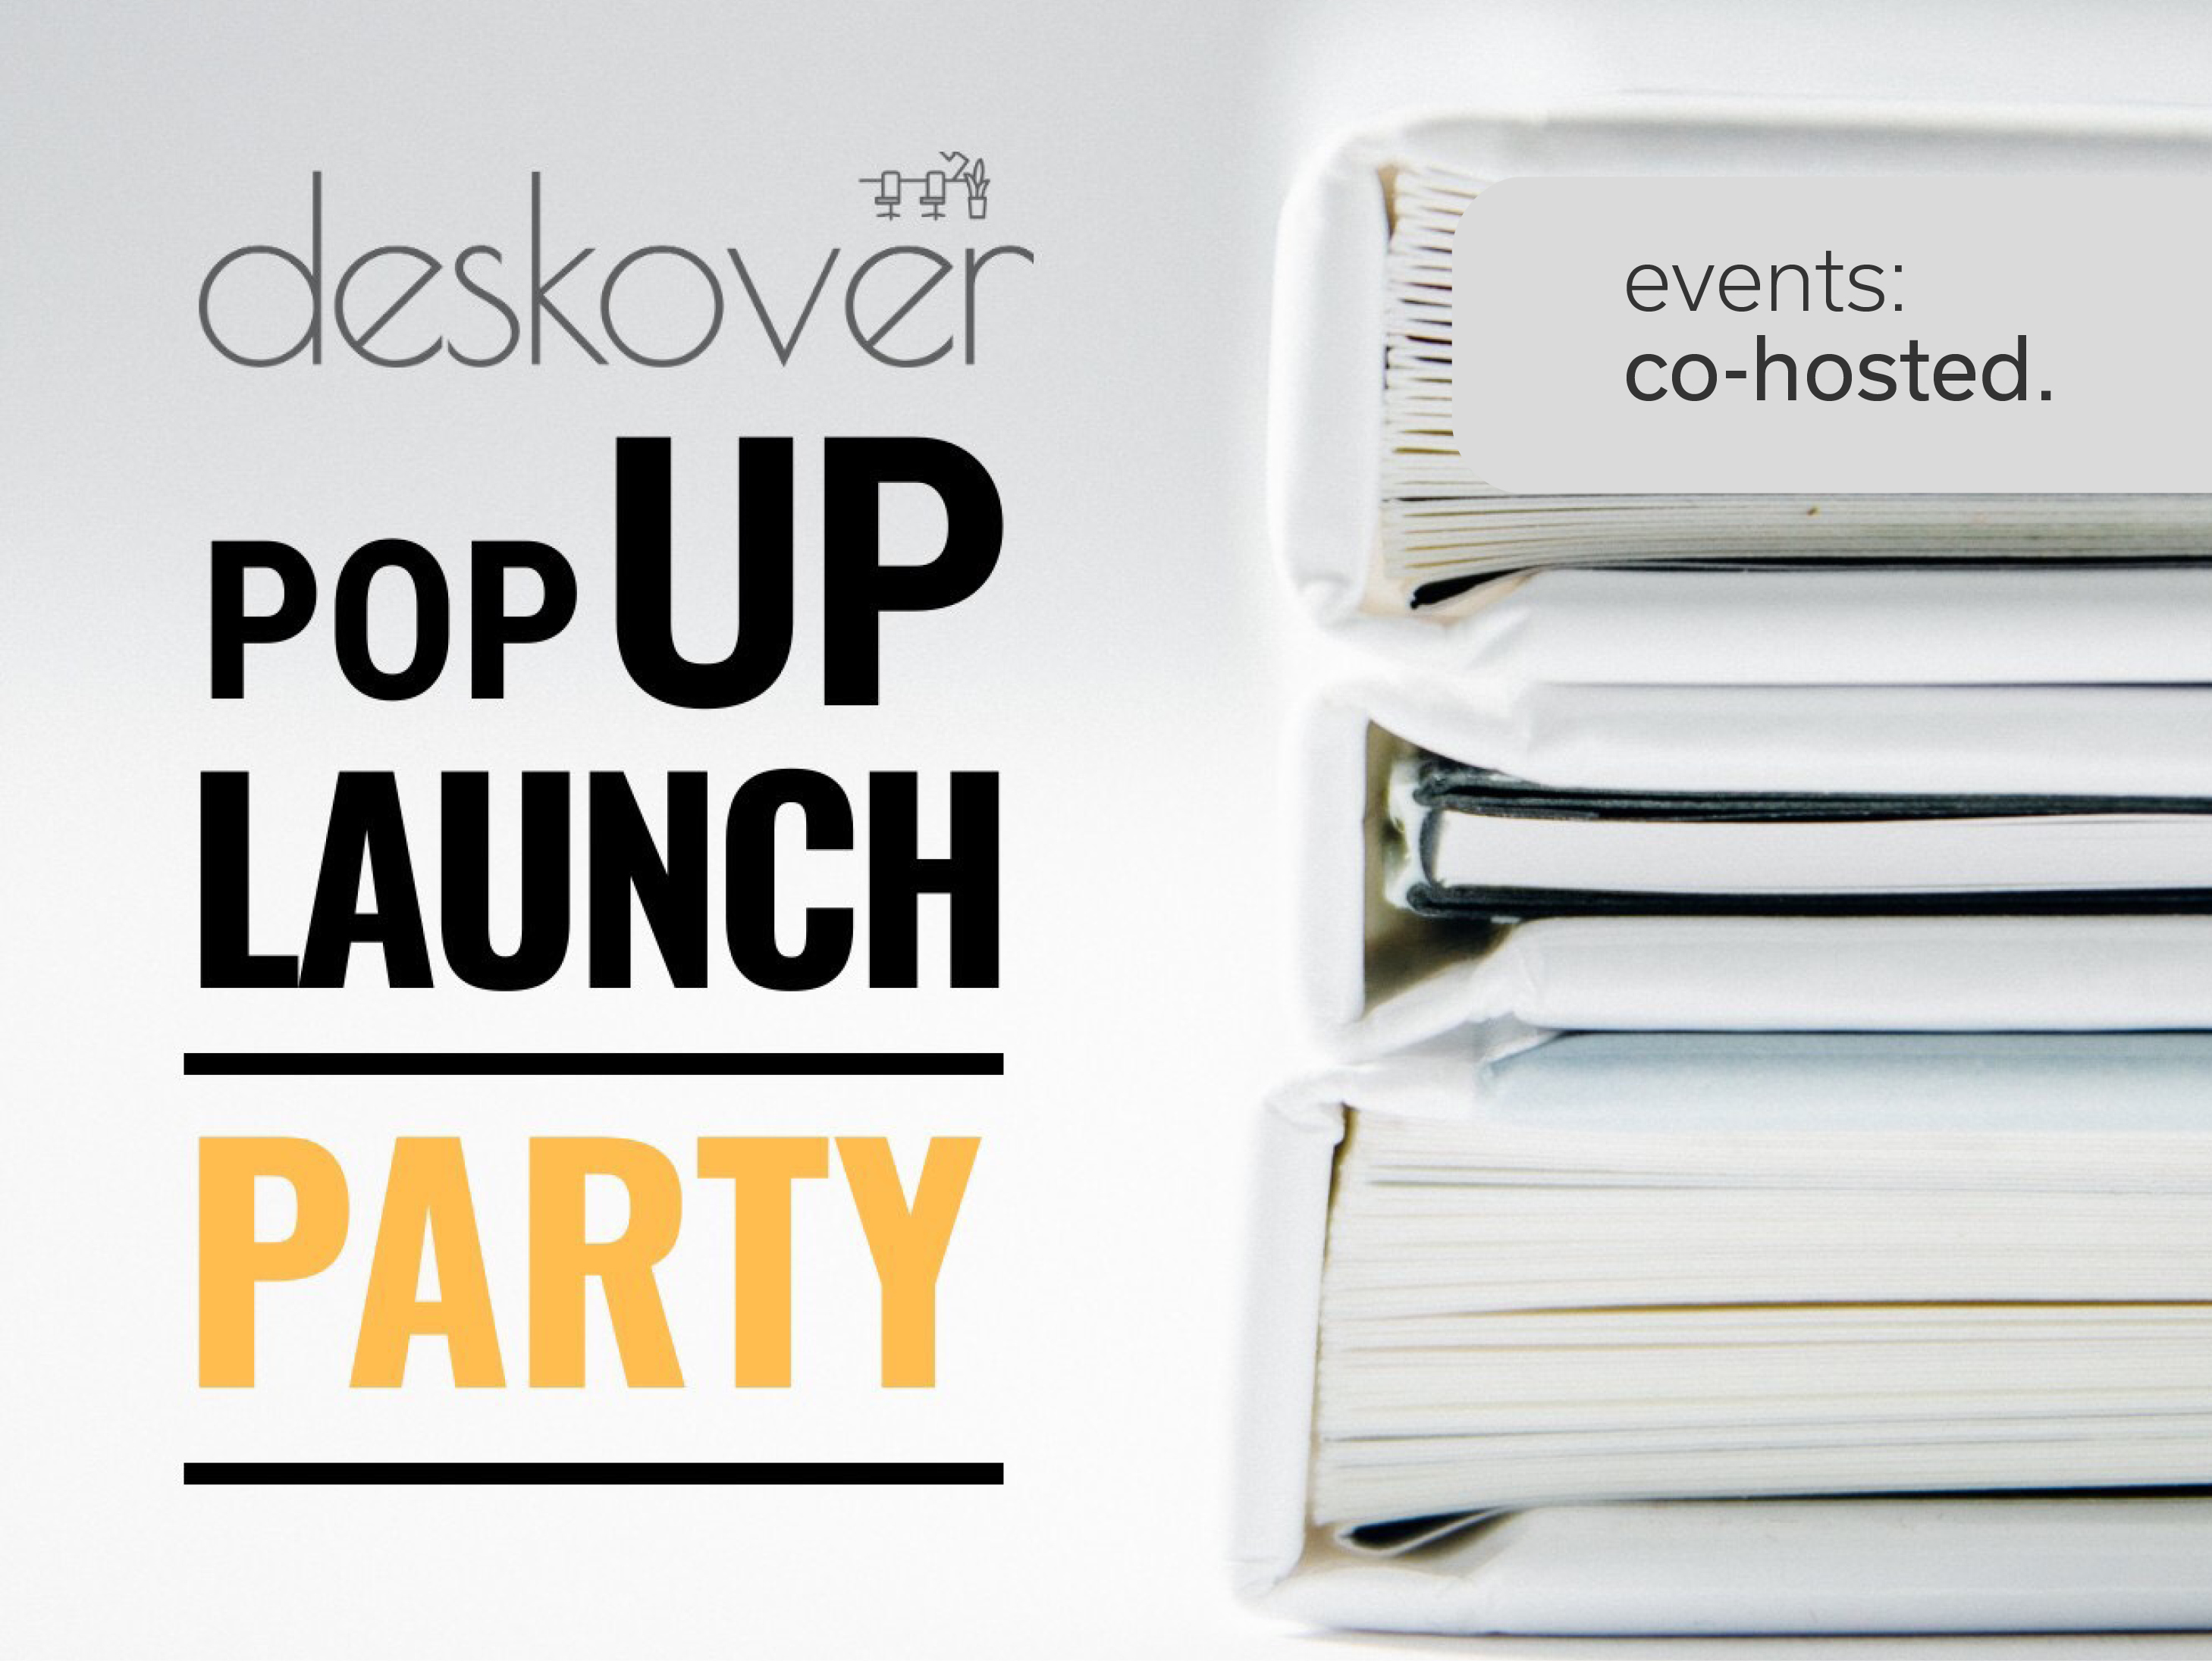 Deskover — Pop-up launch party